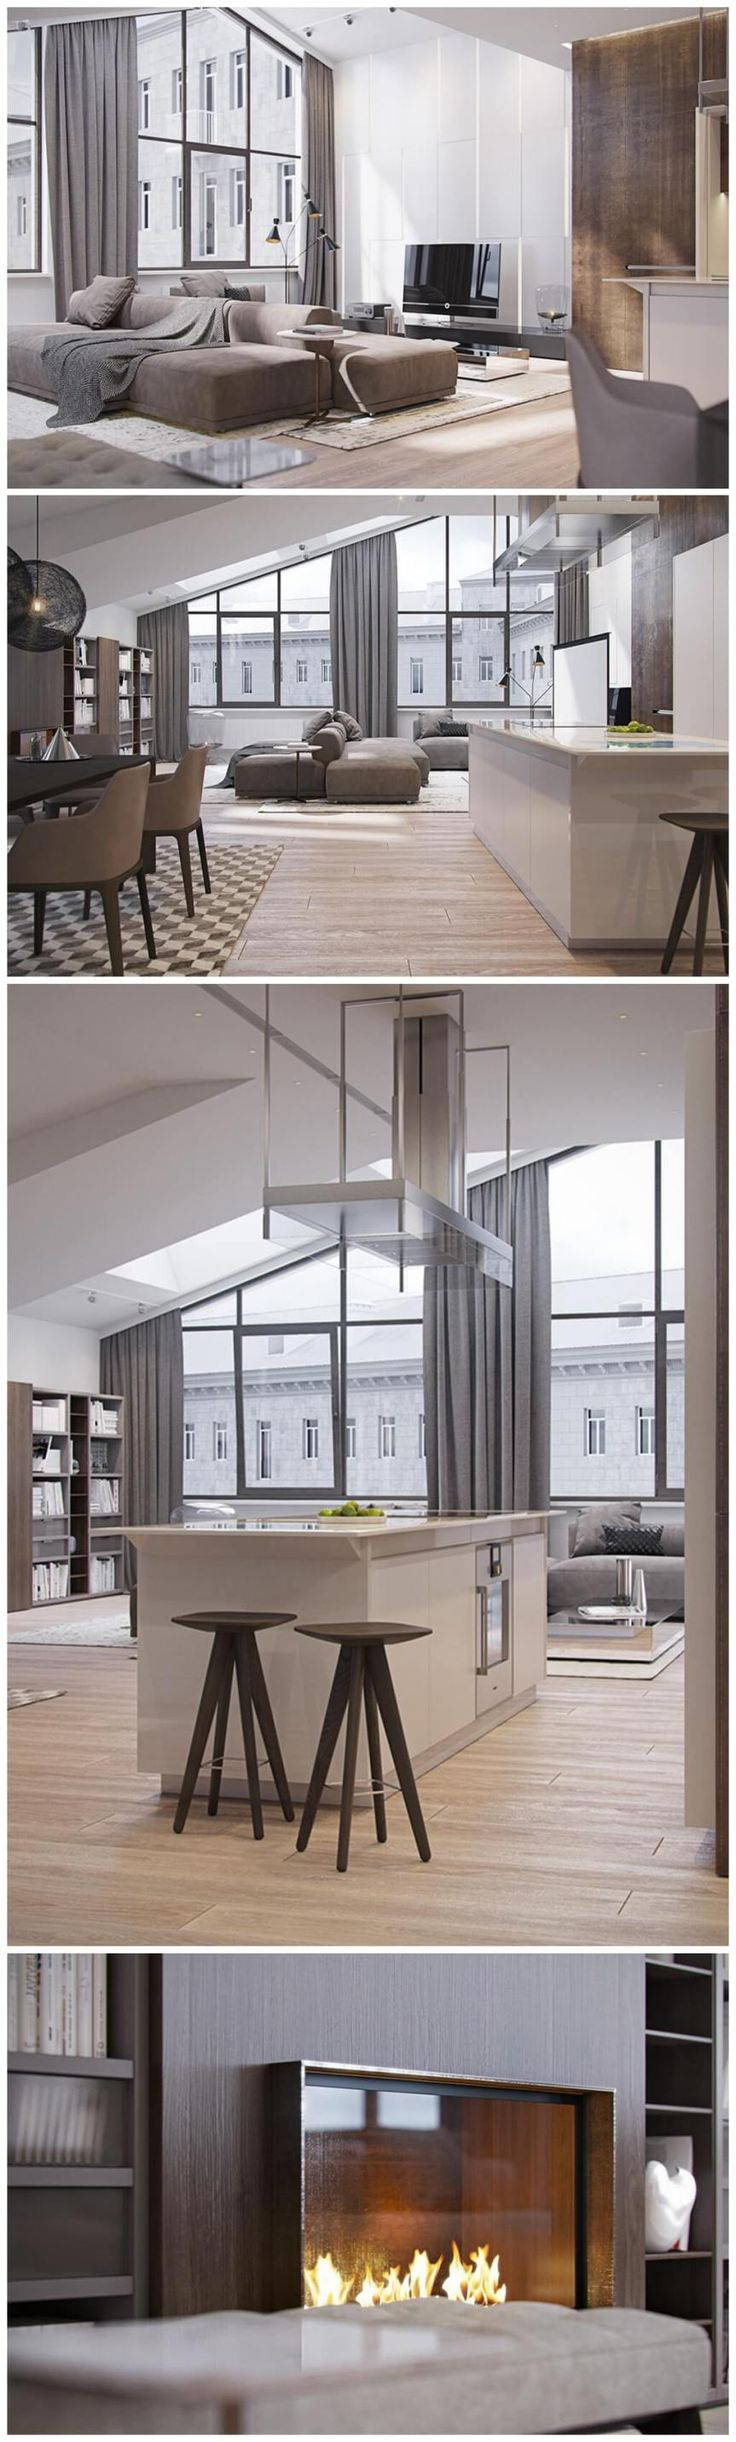 5712 best interior images on pinterest architecture living